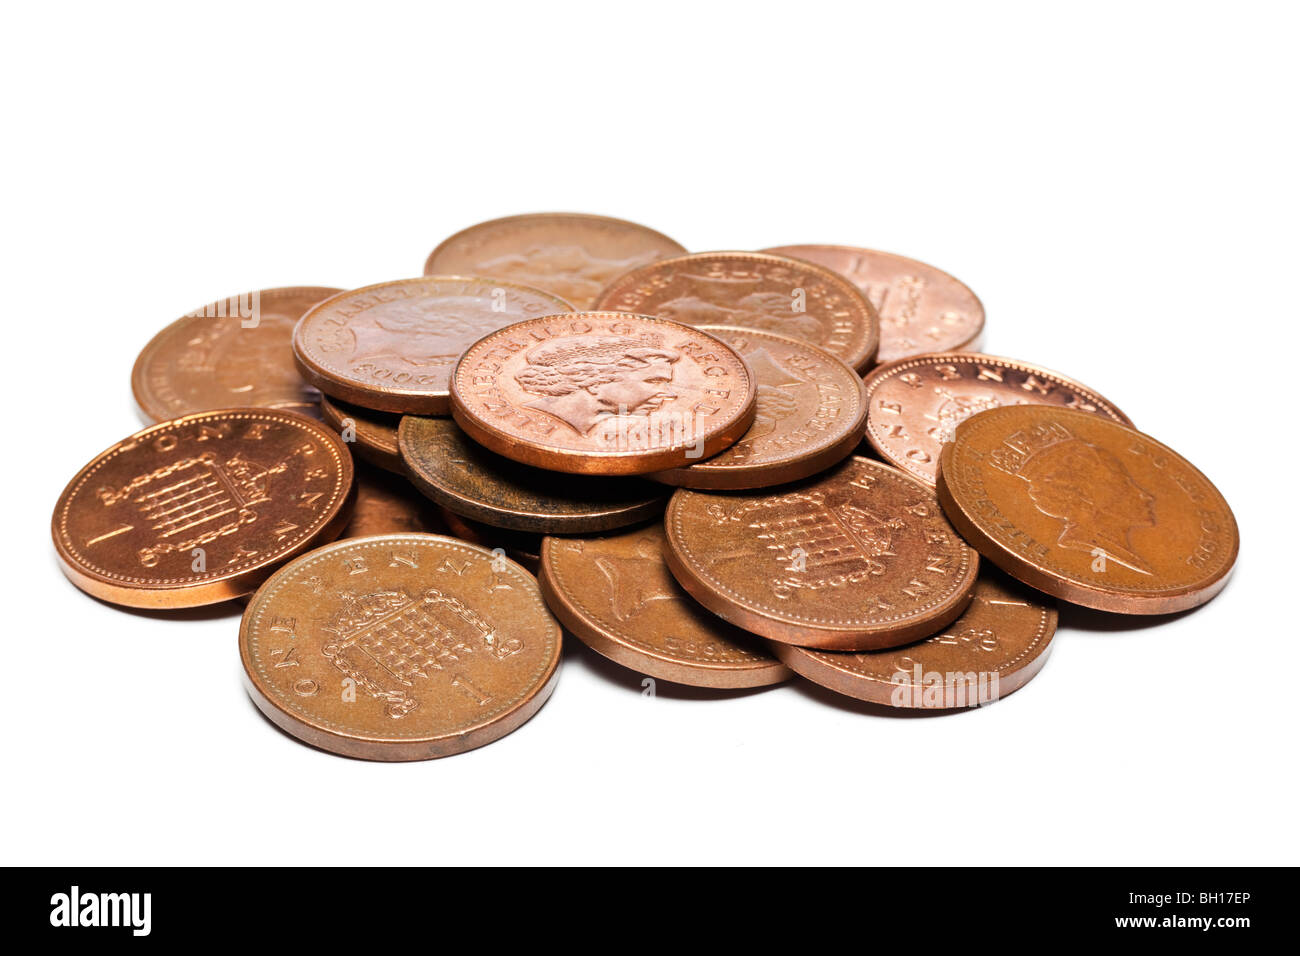 Pile of British uk GBP one pence coins close up - Stock Image